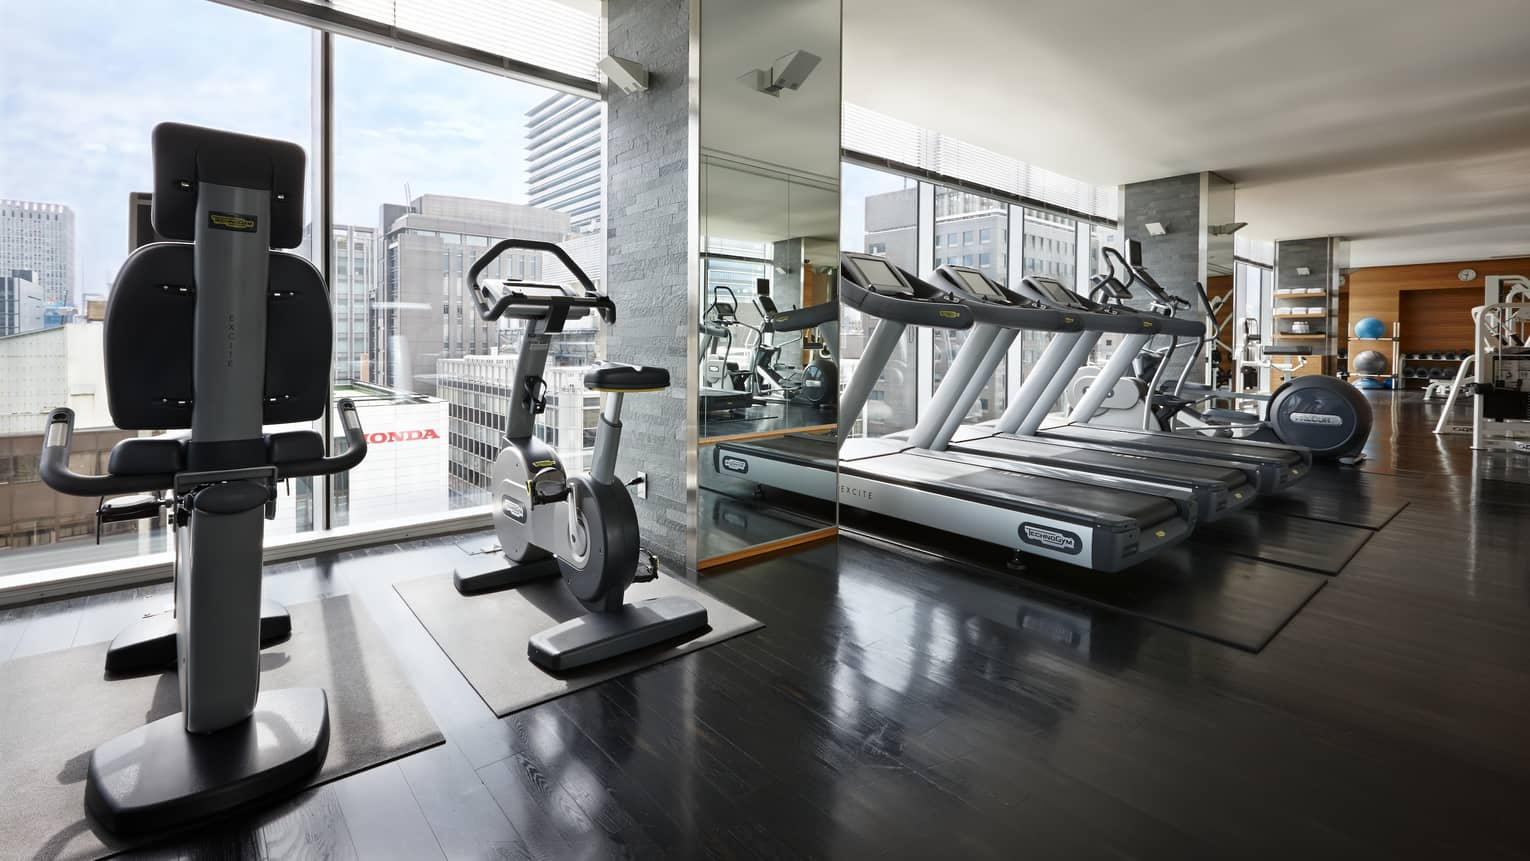 Elliptical machines, treadmills, cardio equipment by sunny window in Fitness Centre